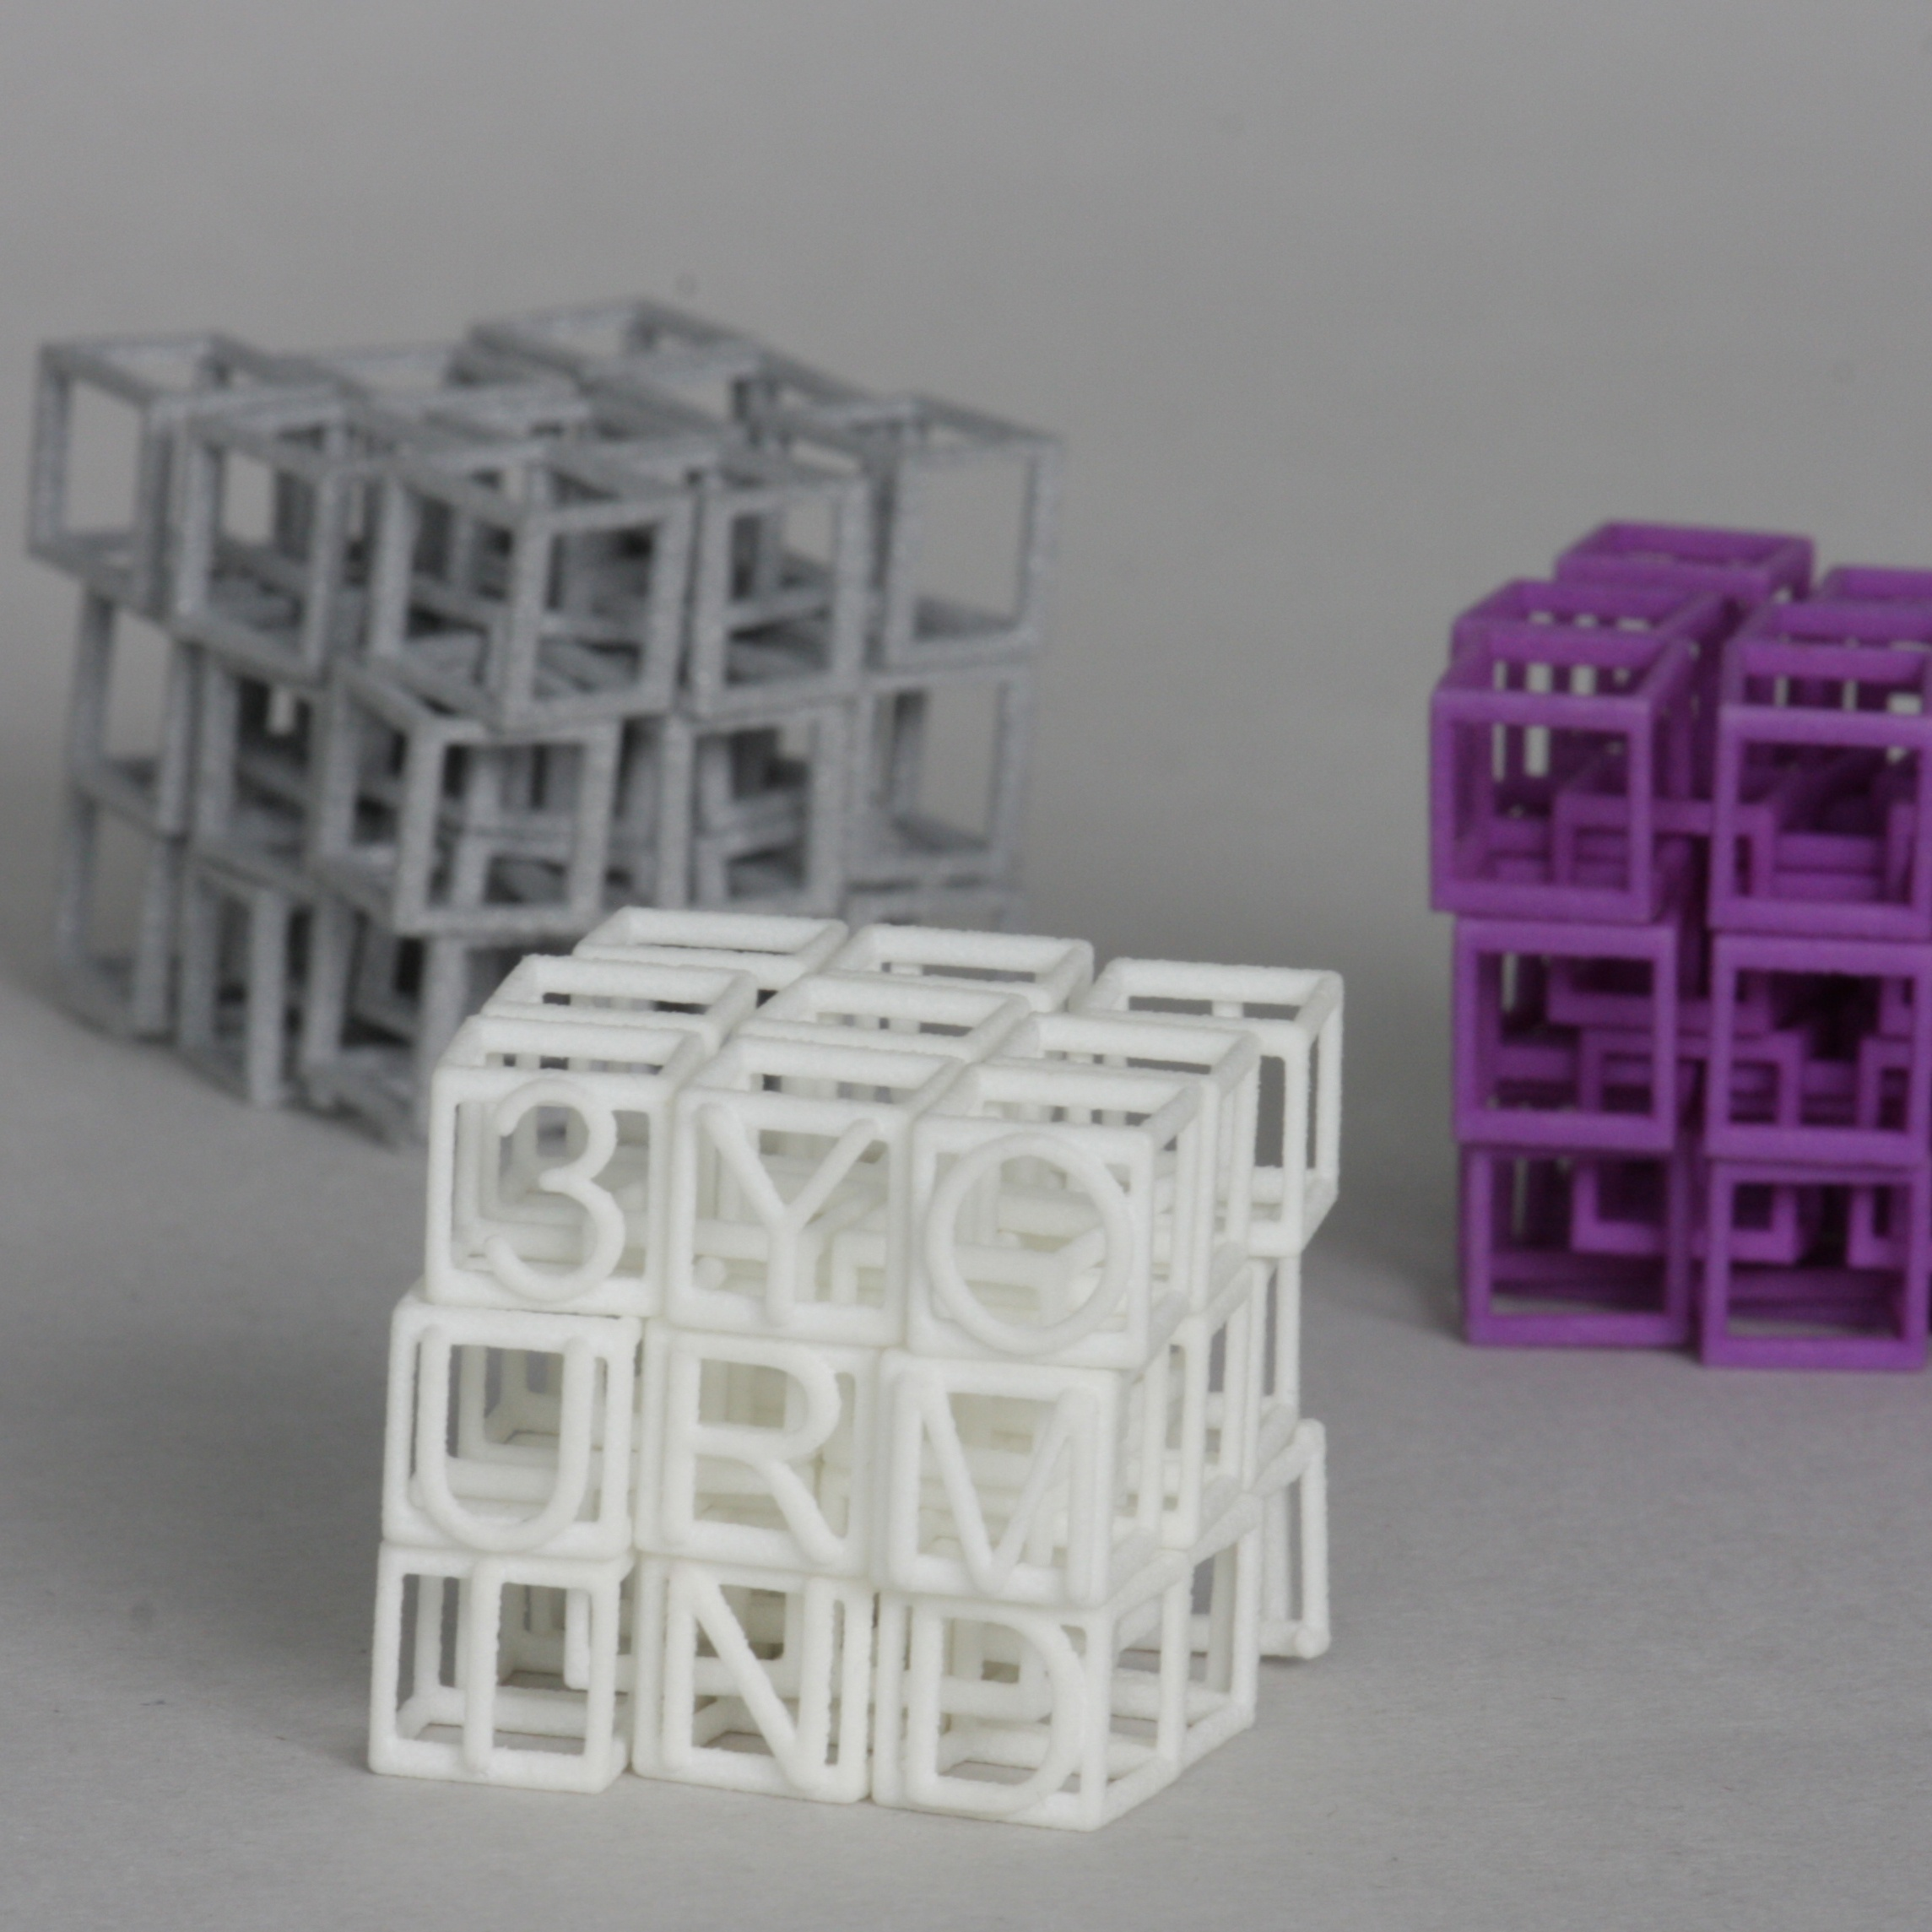 3YOURMIND 3D Printed in Interlocking Squares